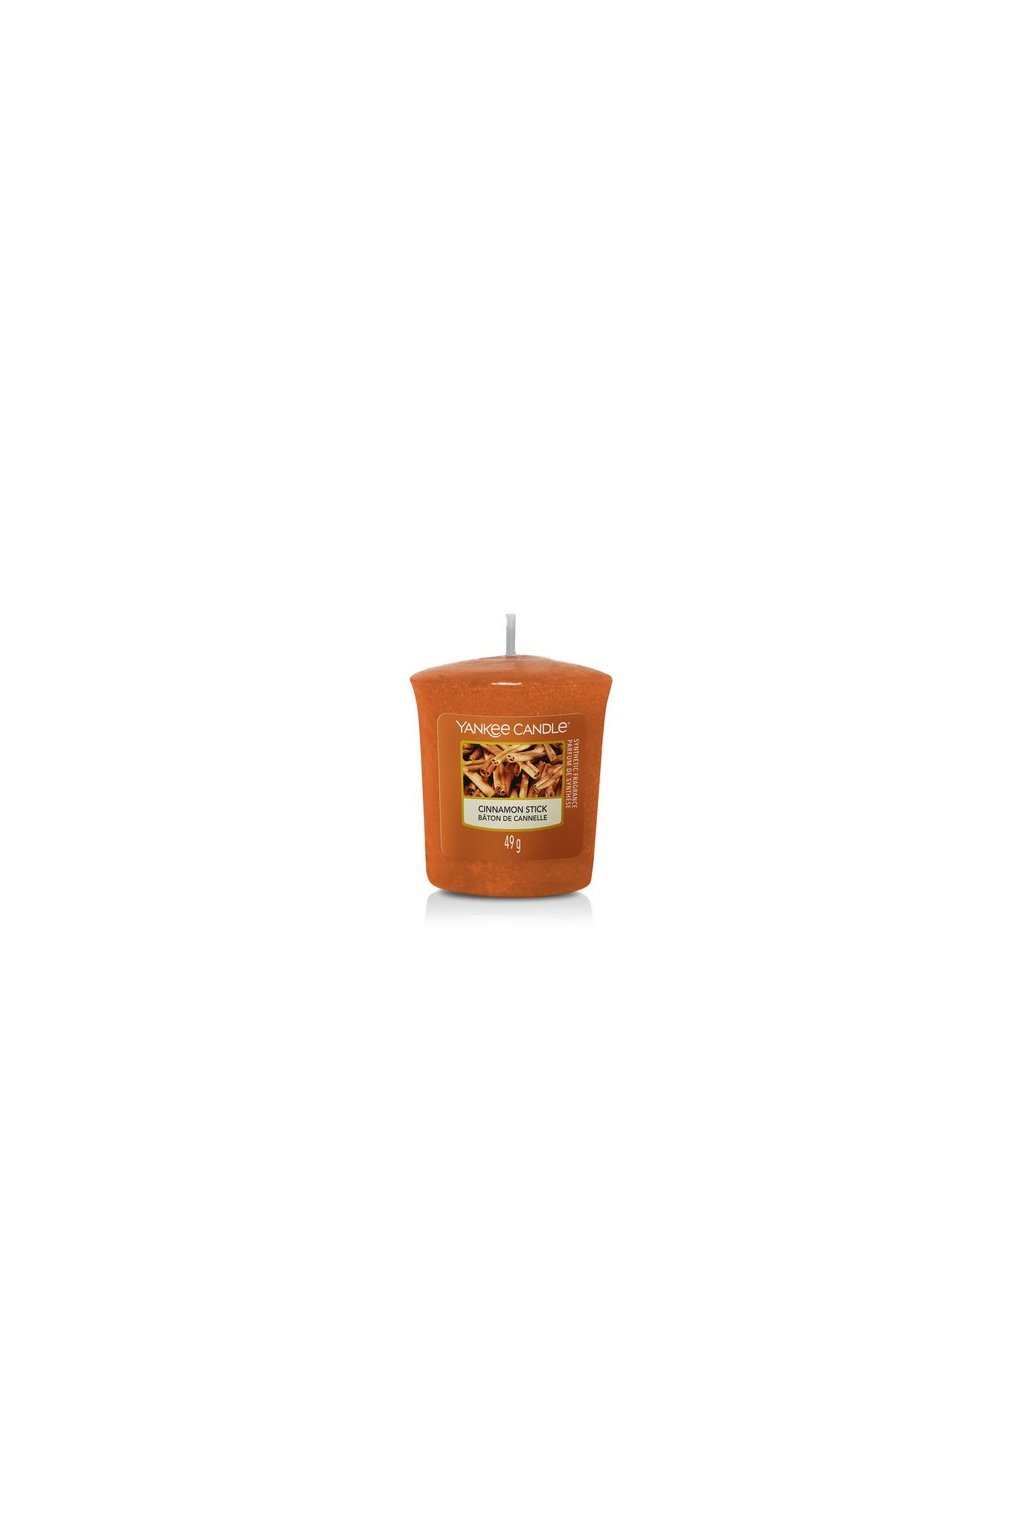 Yankee Candle Cinnamon Stick 49g